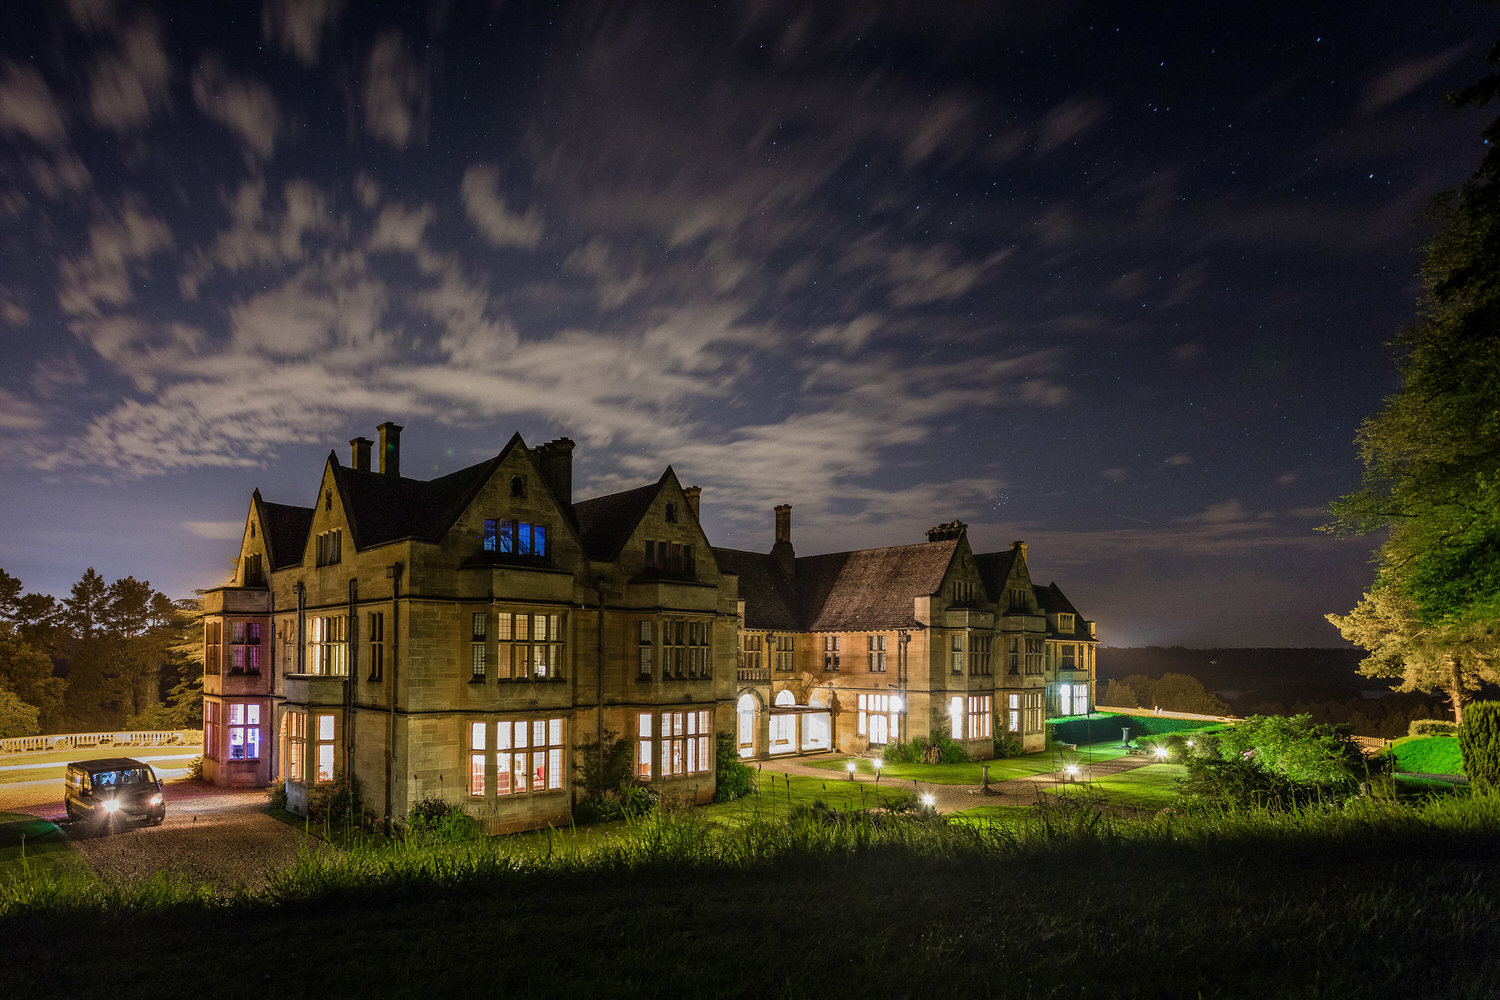 coombe lodge at blagdon at night